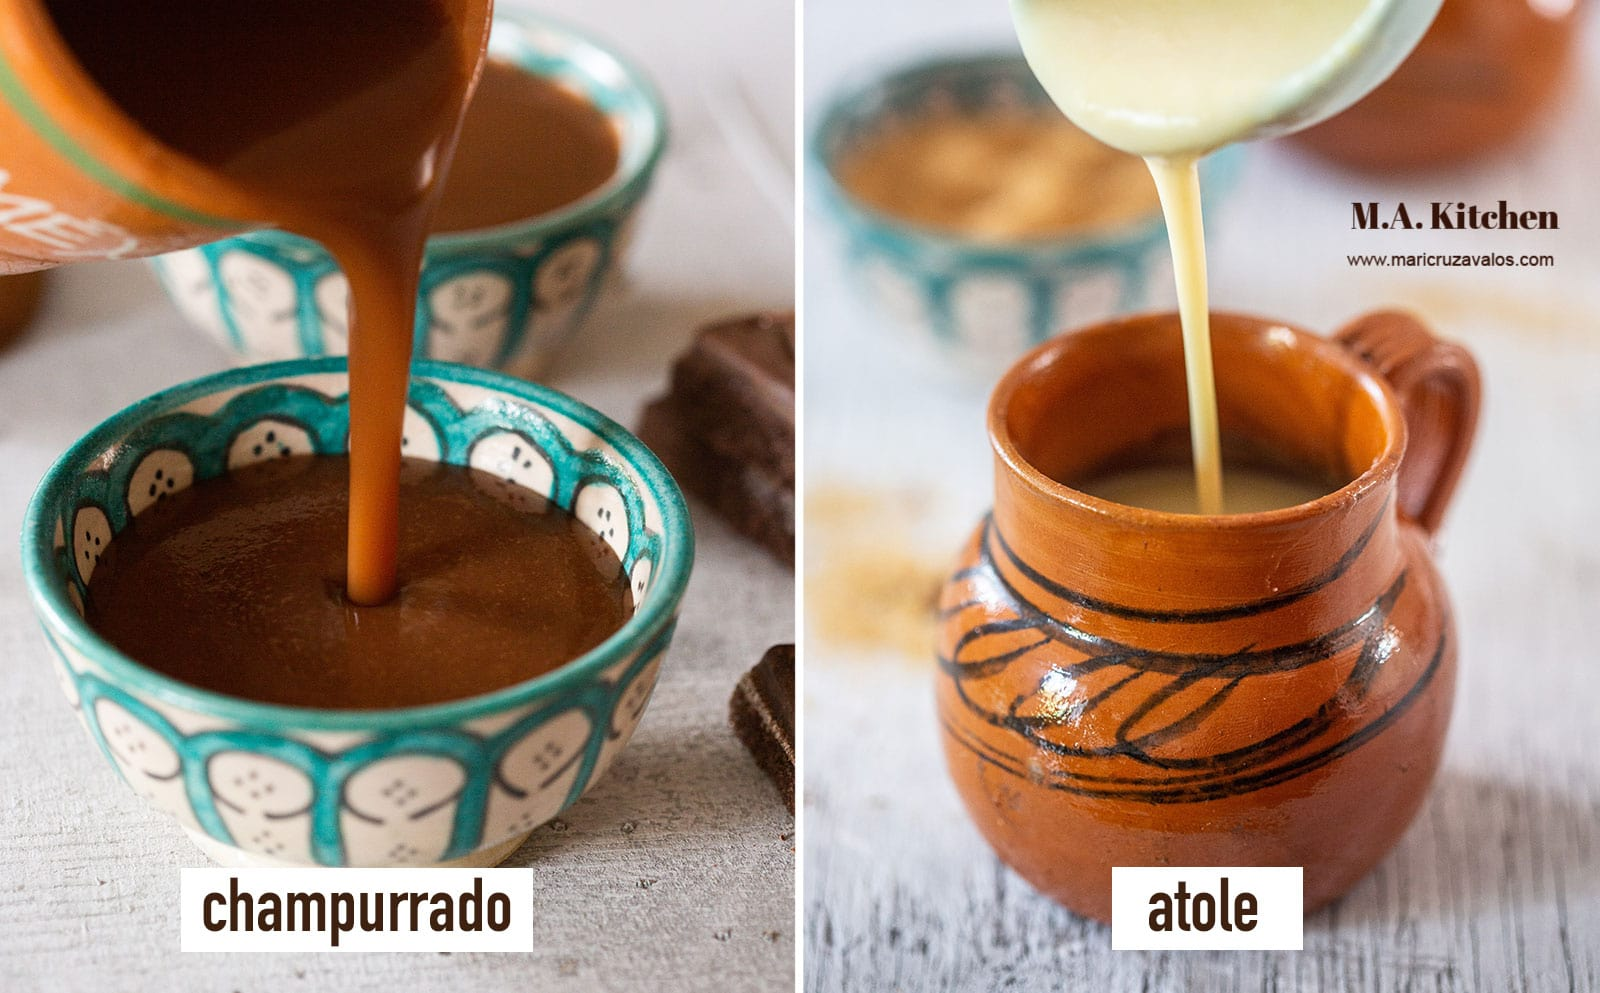 A collage showing champurrado and atole side to side.